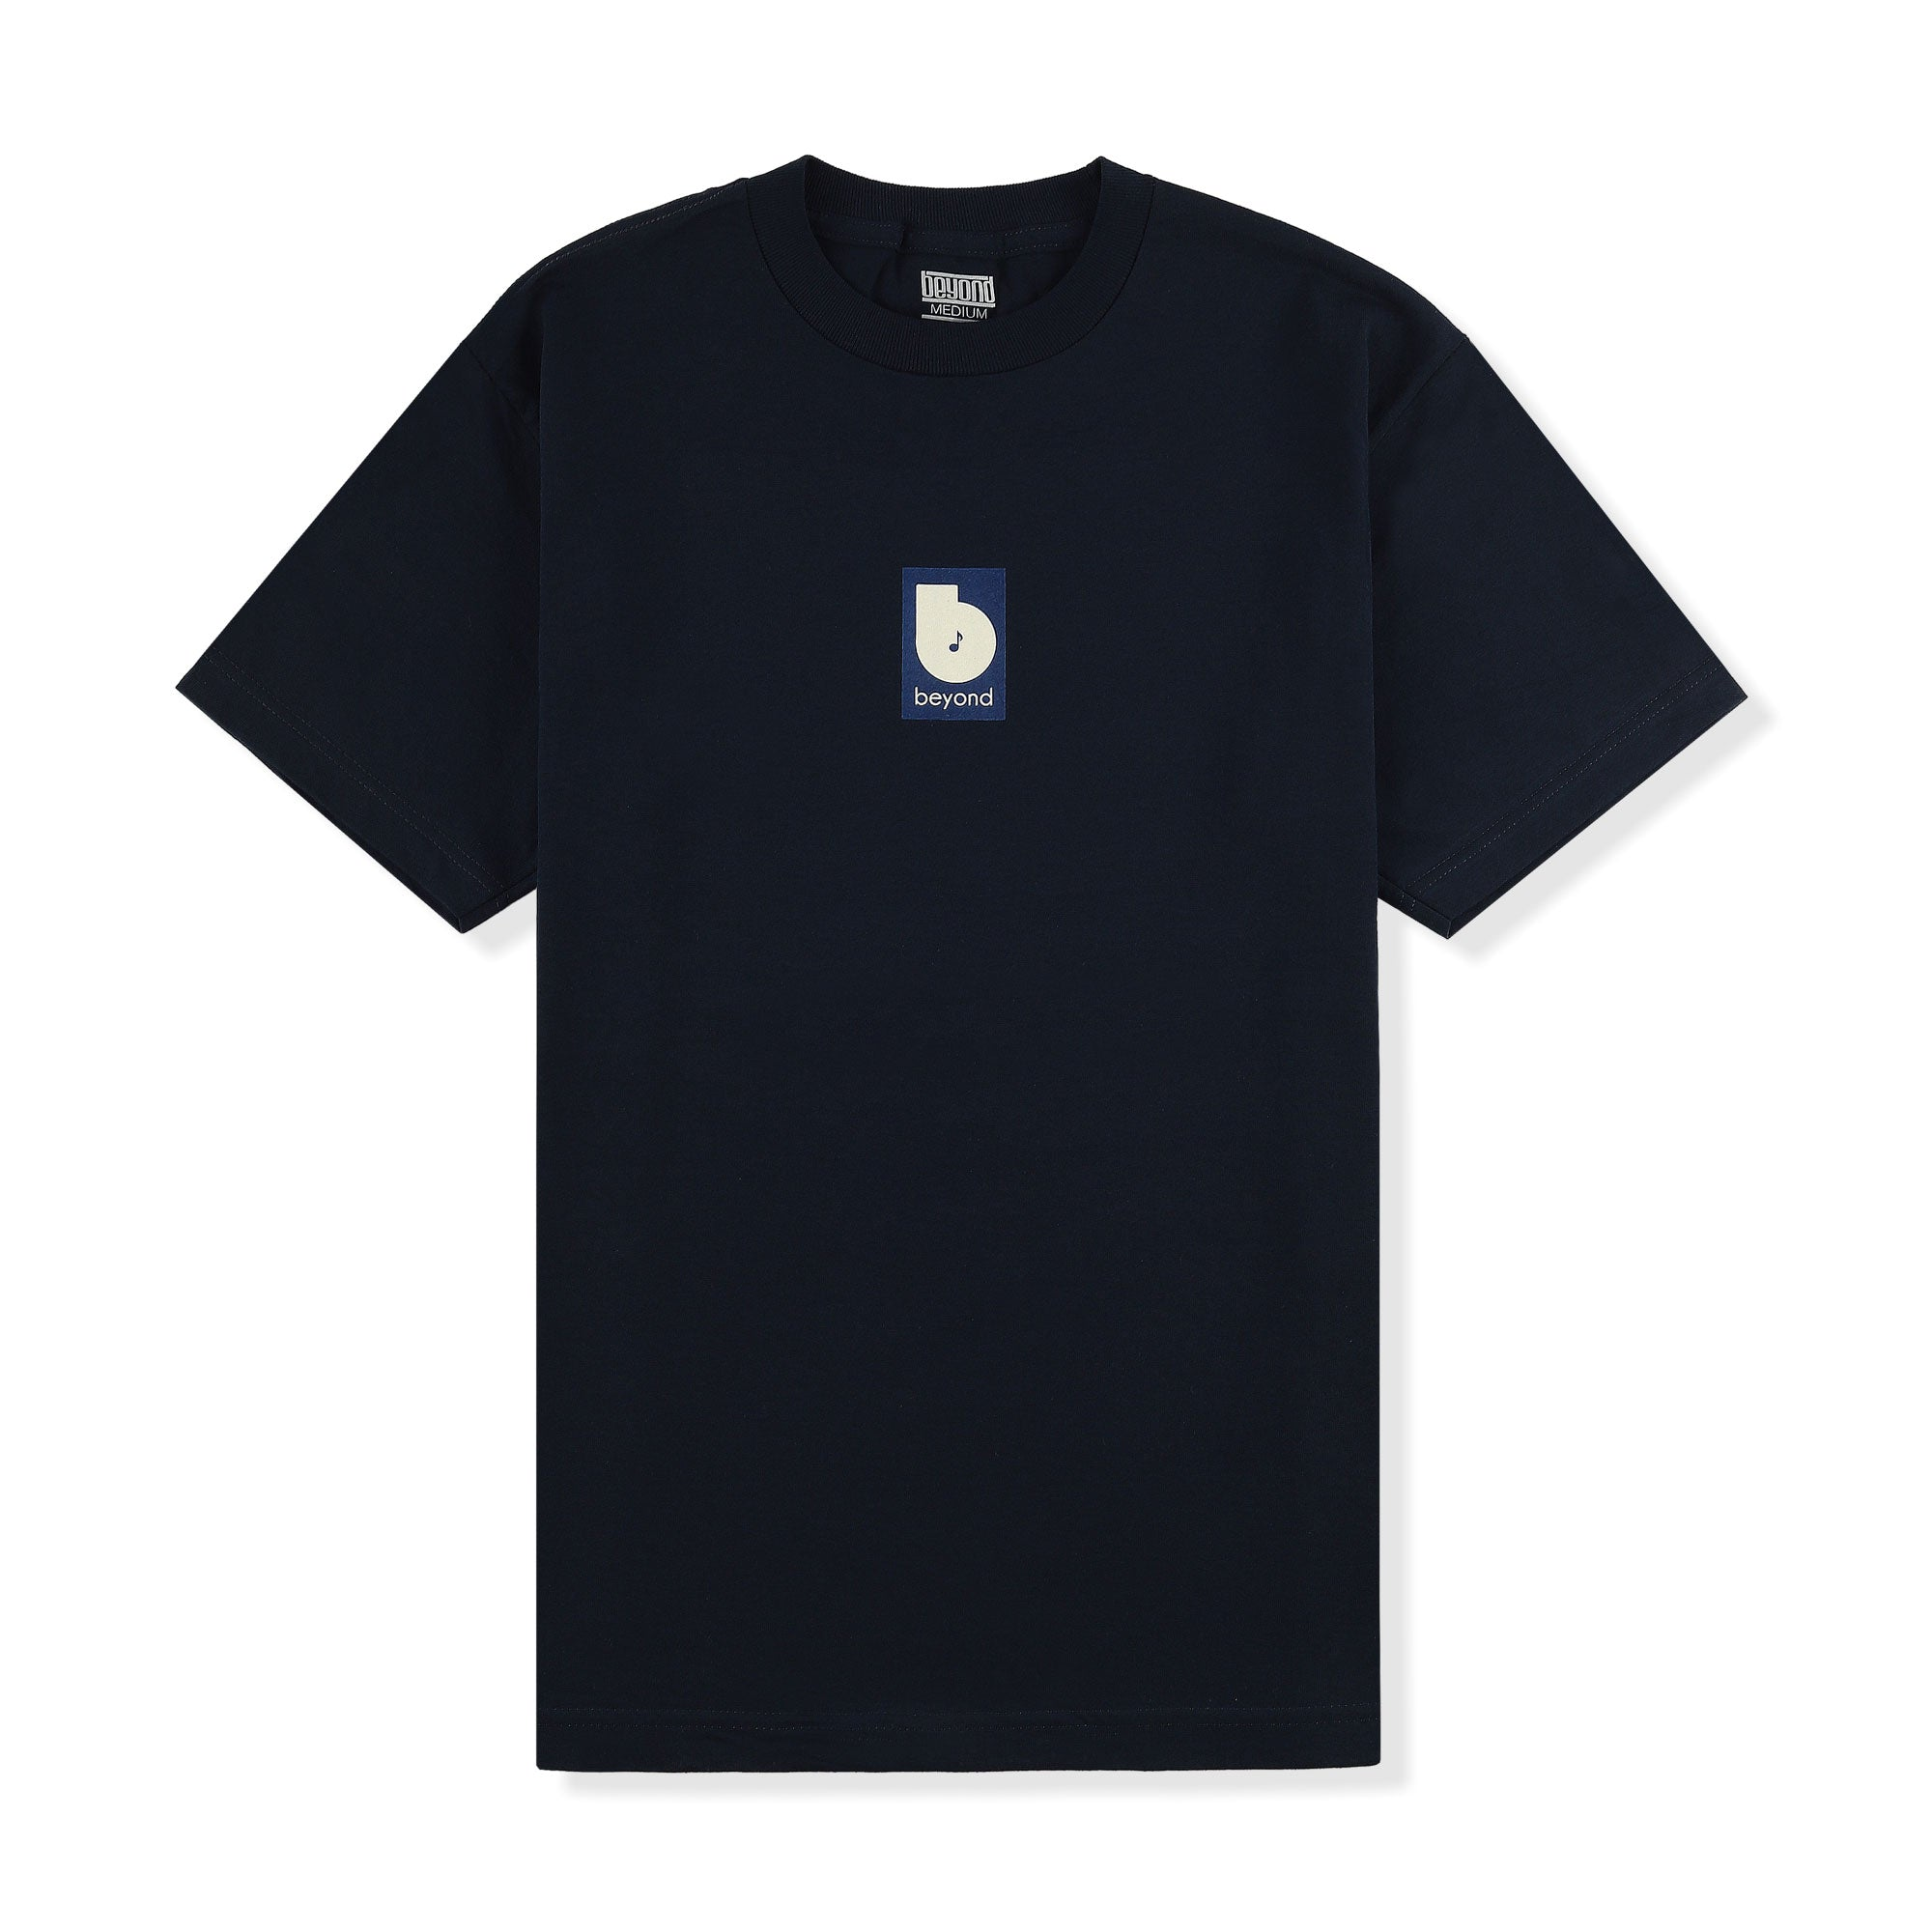 Beyond Note Tee Product Photo #1